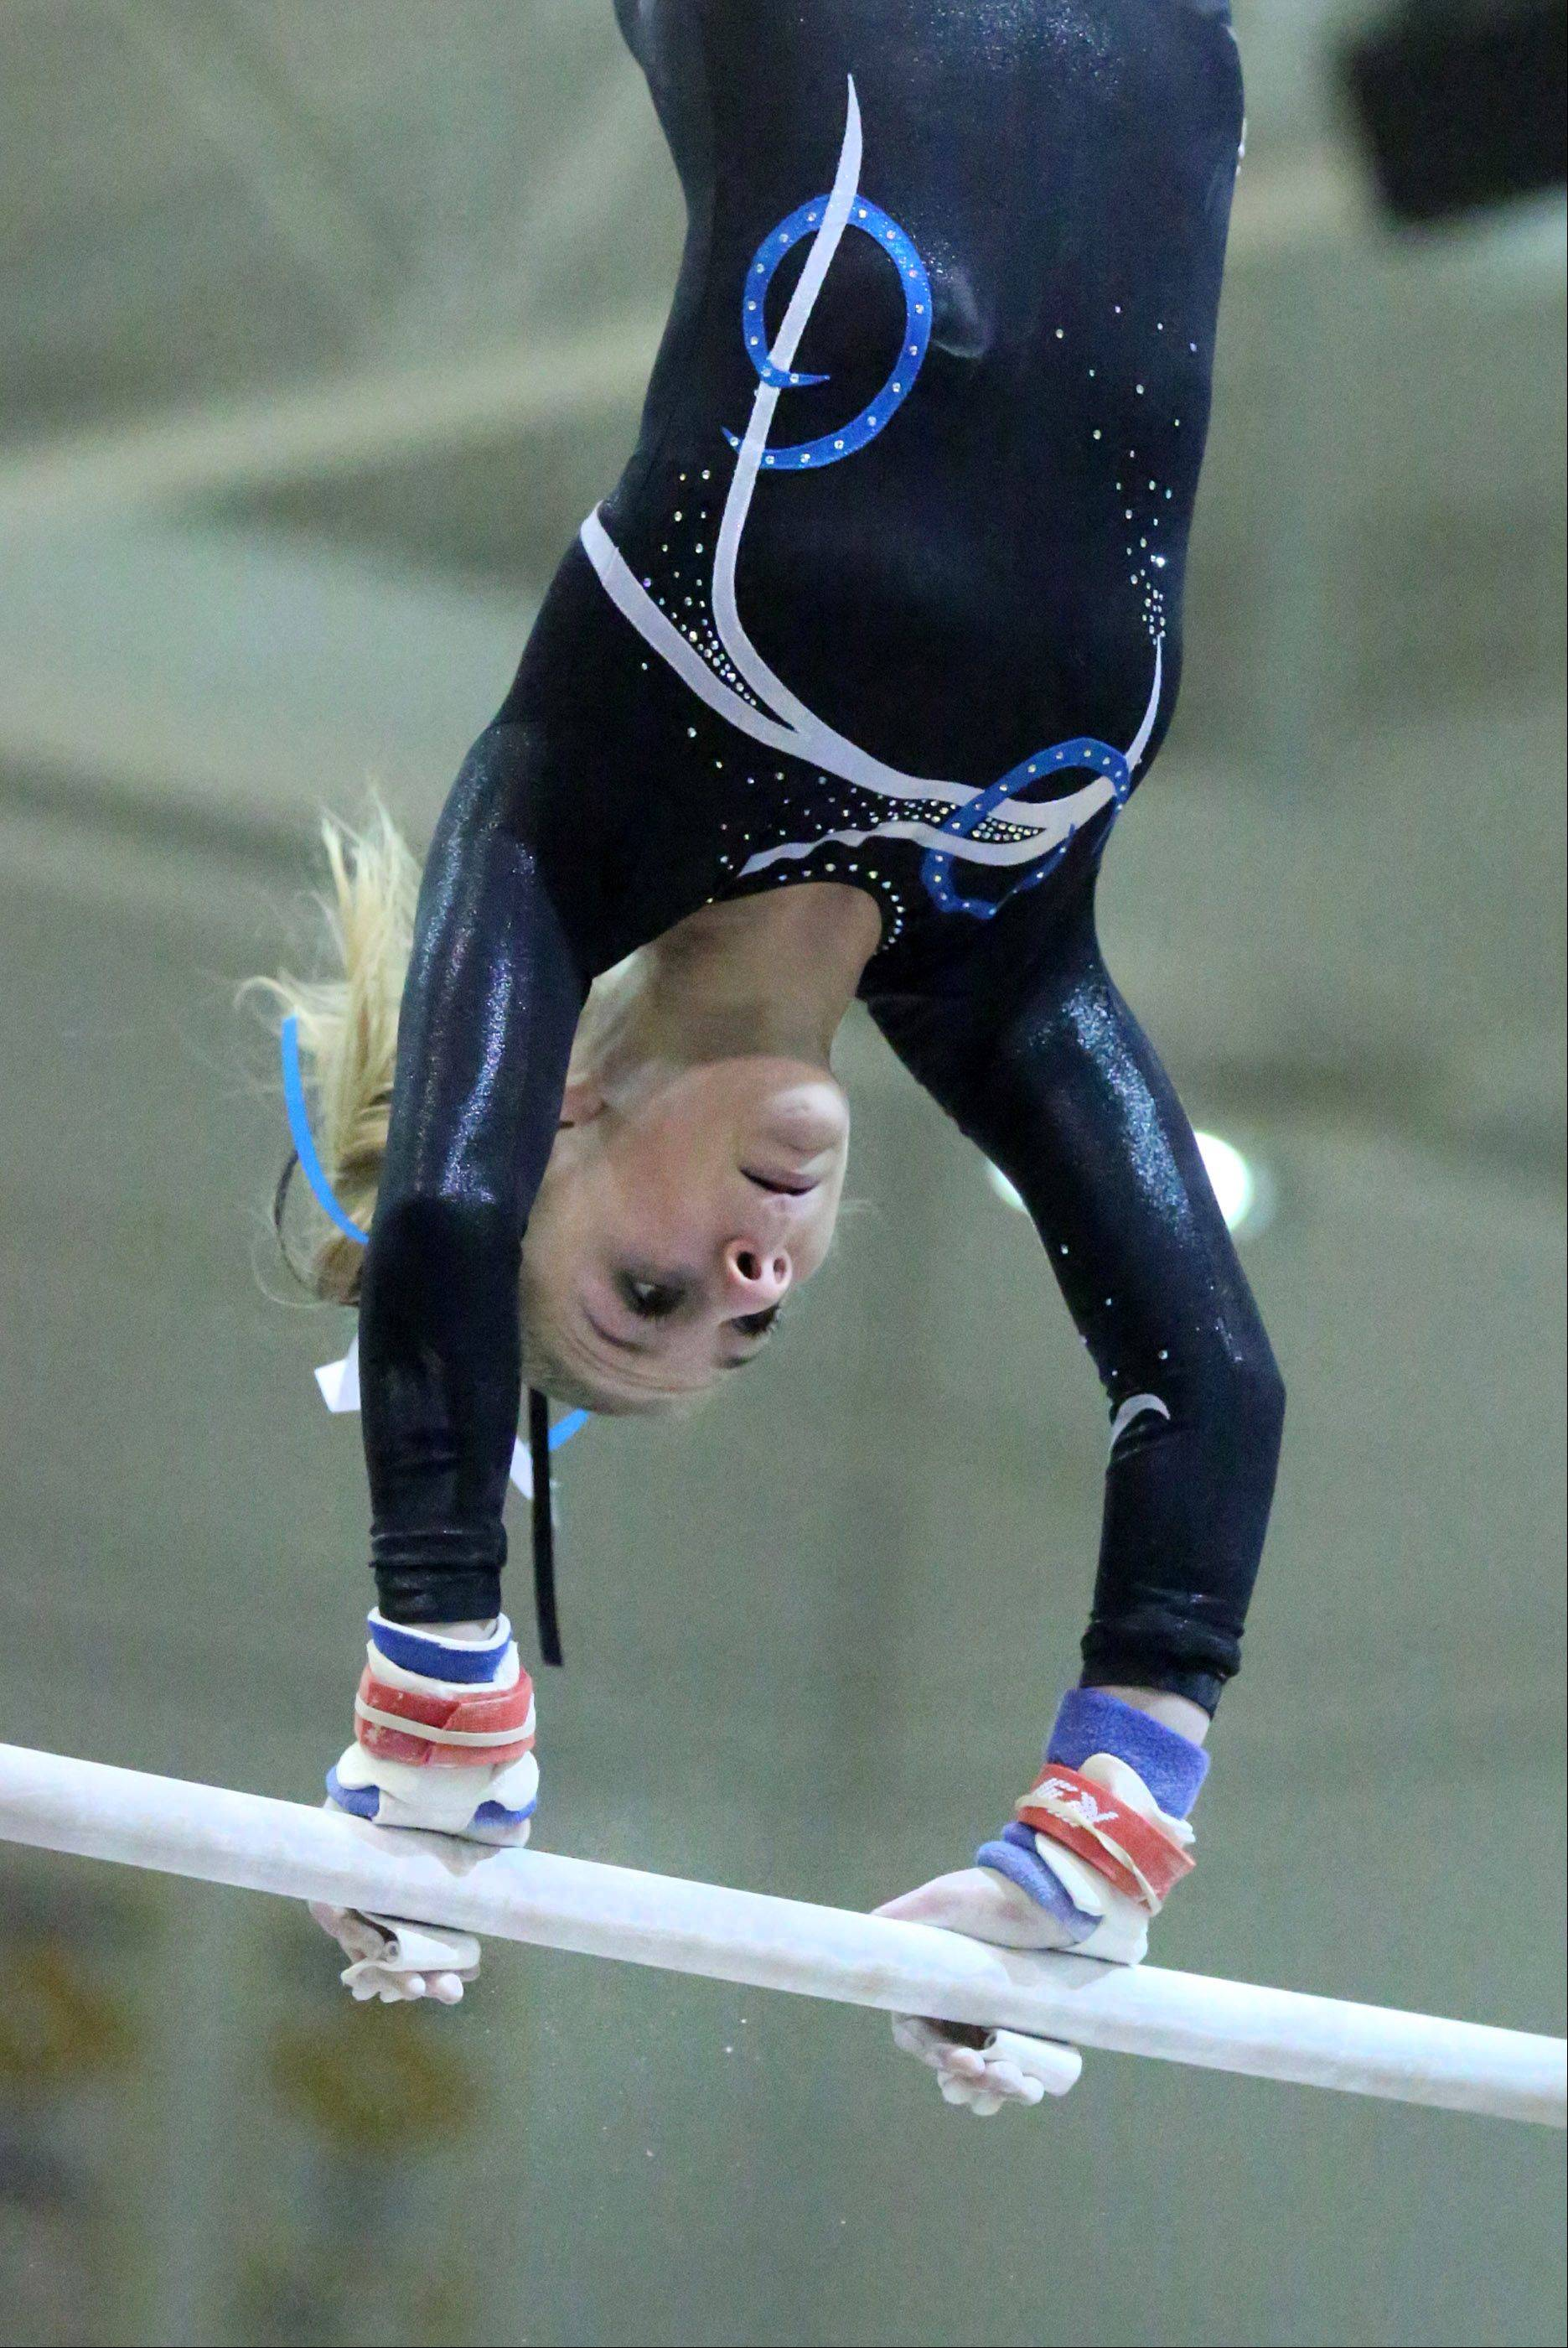 Prospect's Maddie Boldt competes on the uneven bars at the Rolling Meadows Al Galatte Invitational on Saturday.